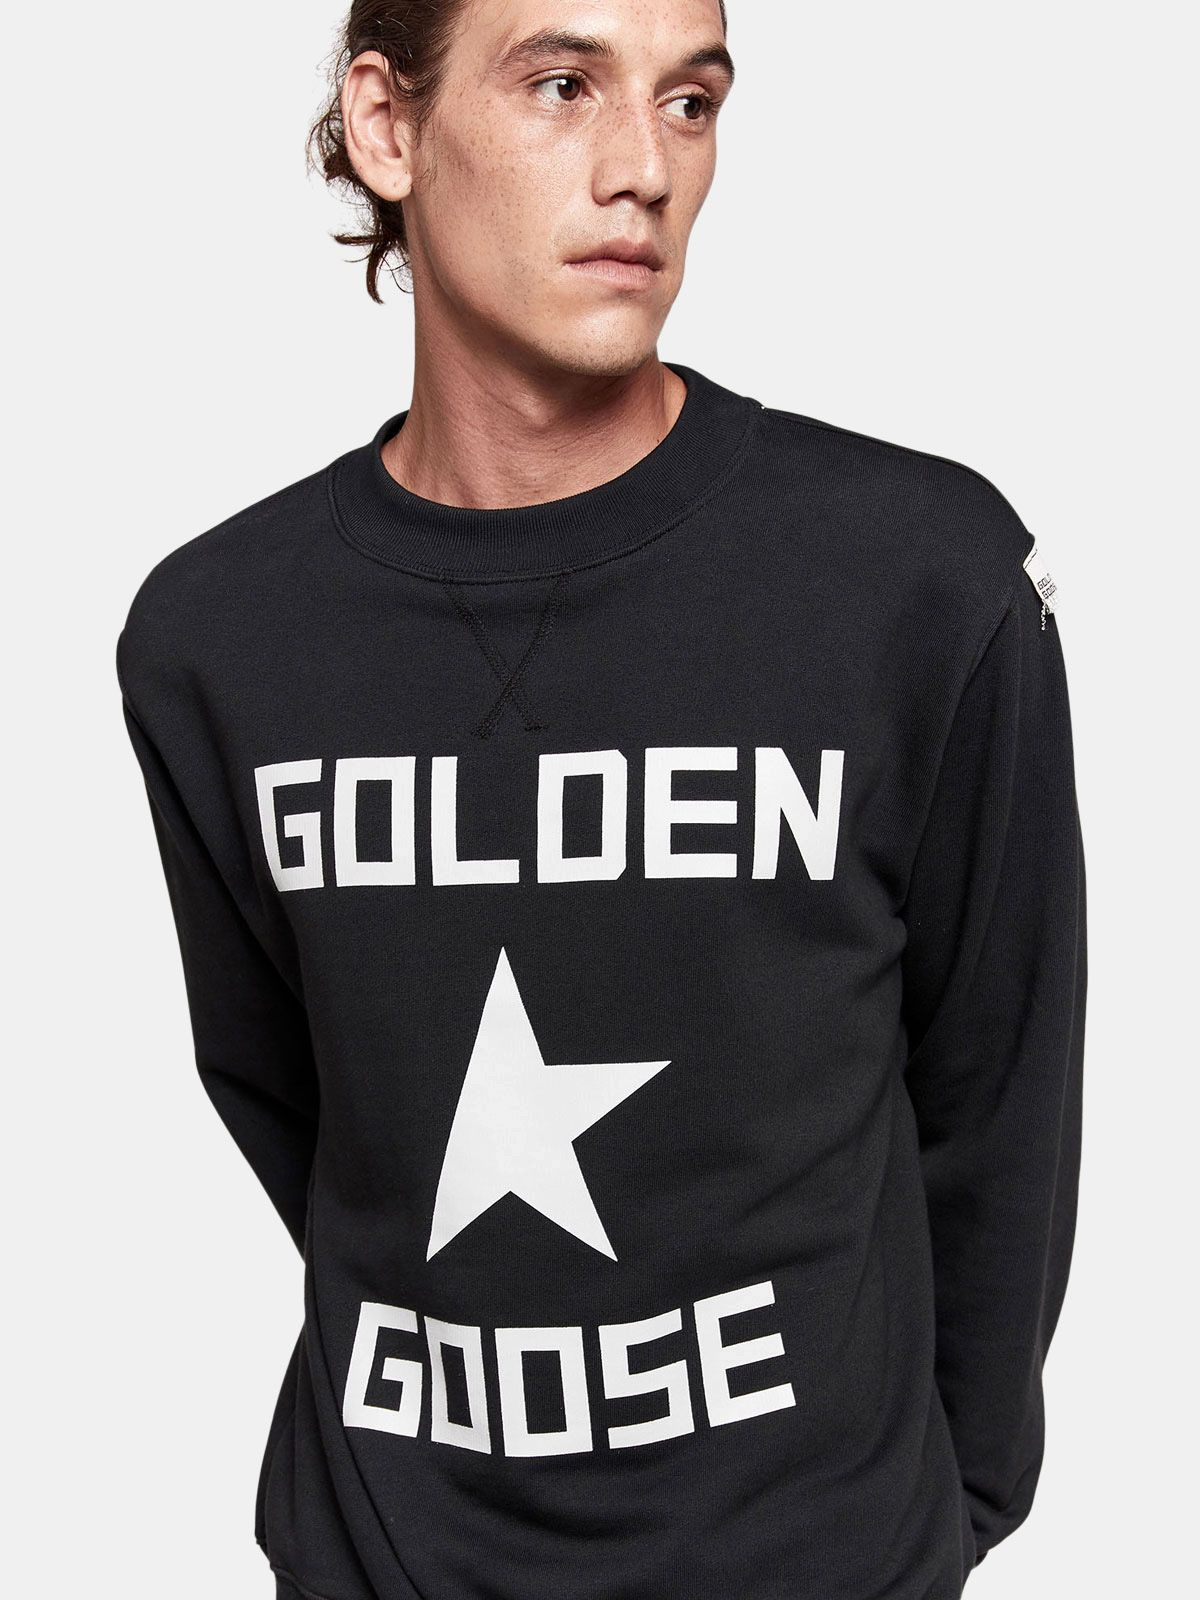 Golden Goose - Hisao sweatshirt in cotton jersey with logo print in